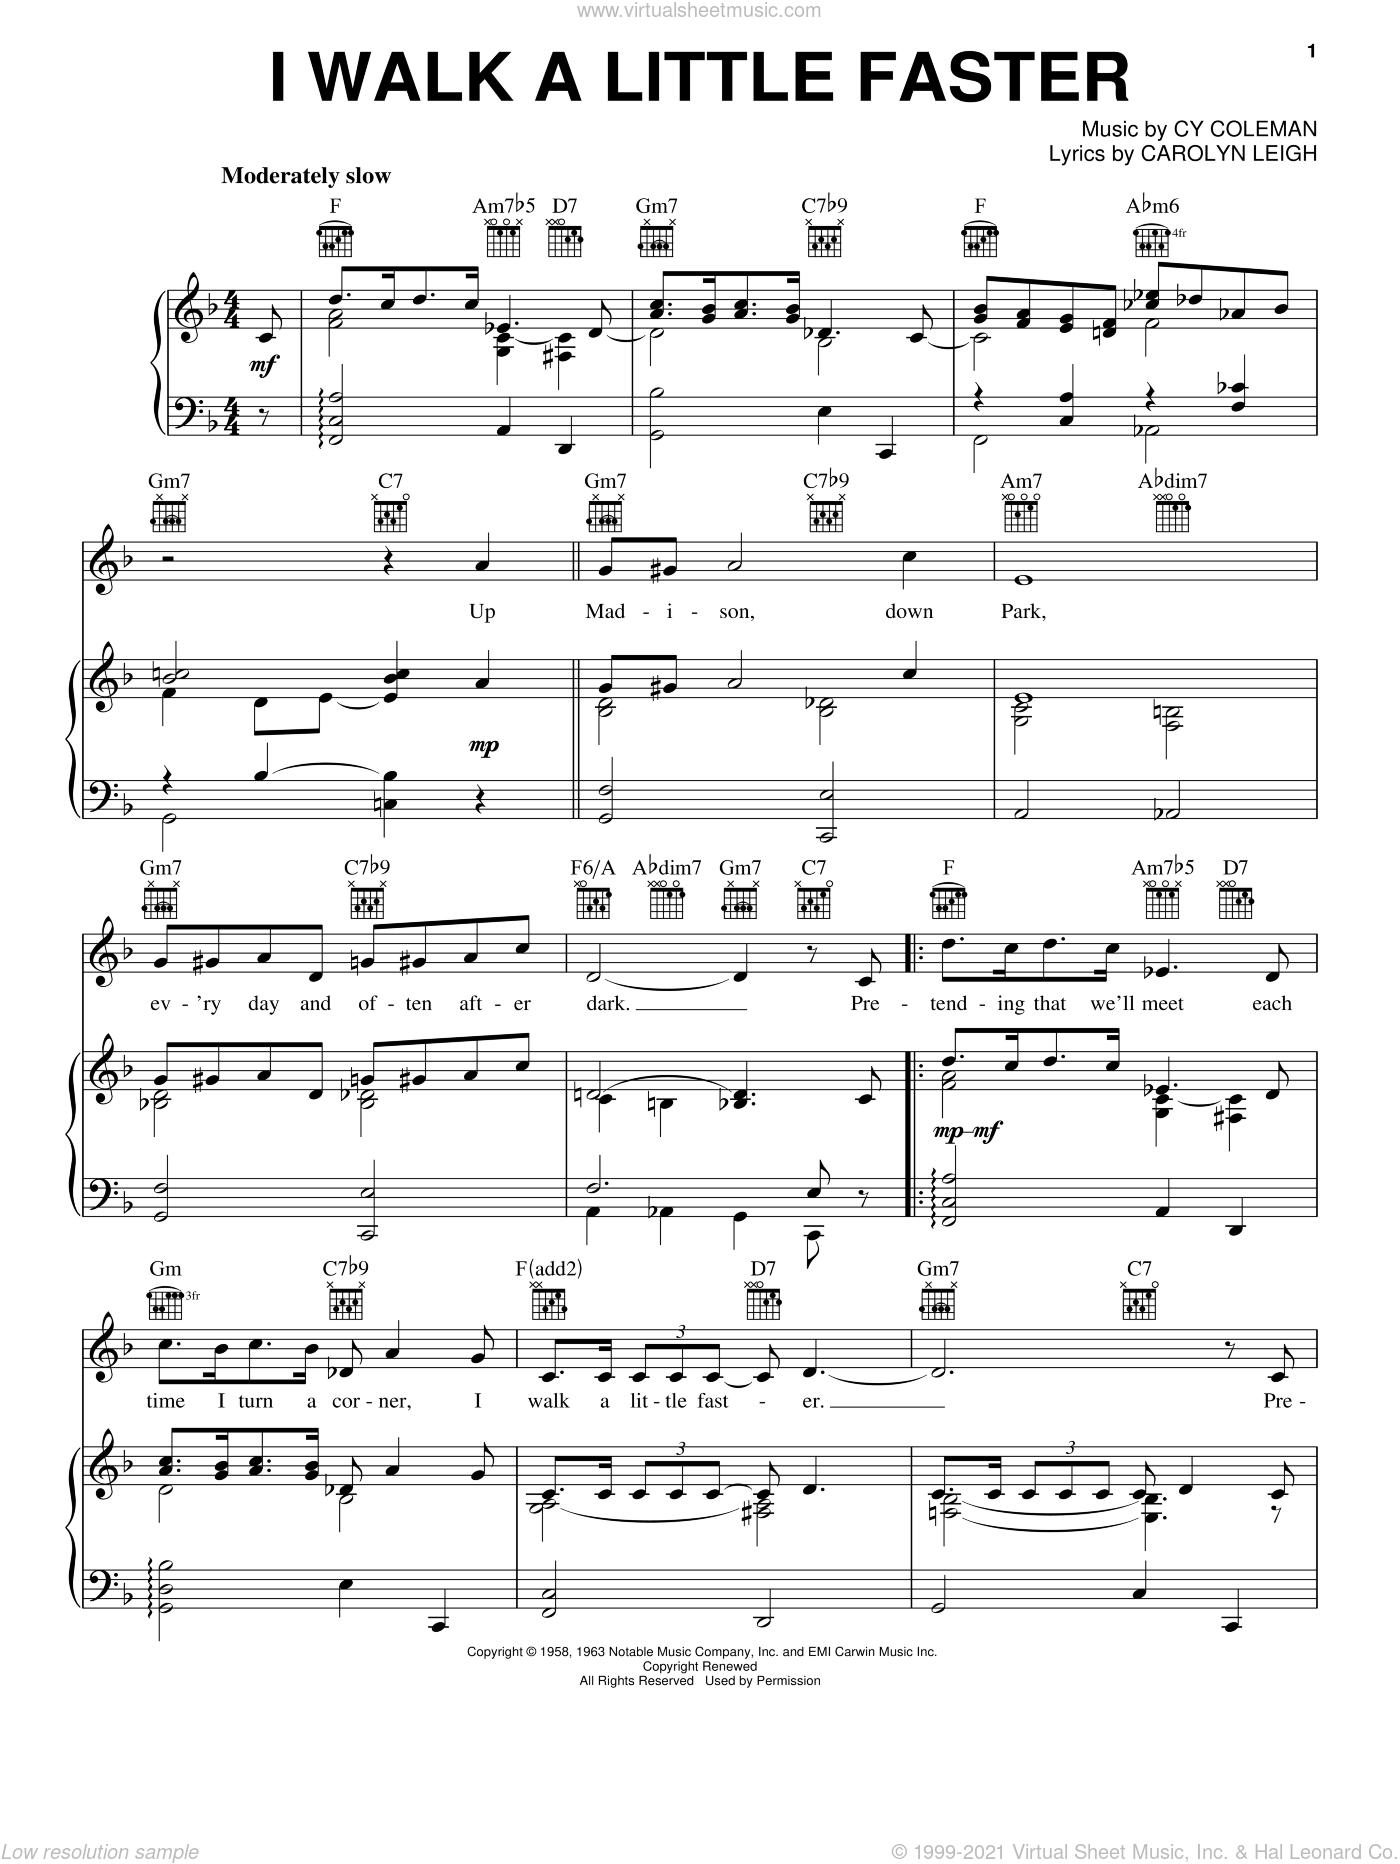 I Walk A Little Faster sheet music for voice, piano or guitar by Cy Coleman and Carolyn Leigh, intermediate. Score Image Preview.